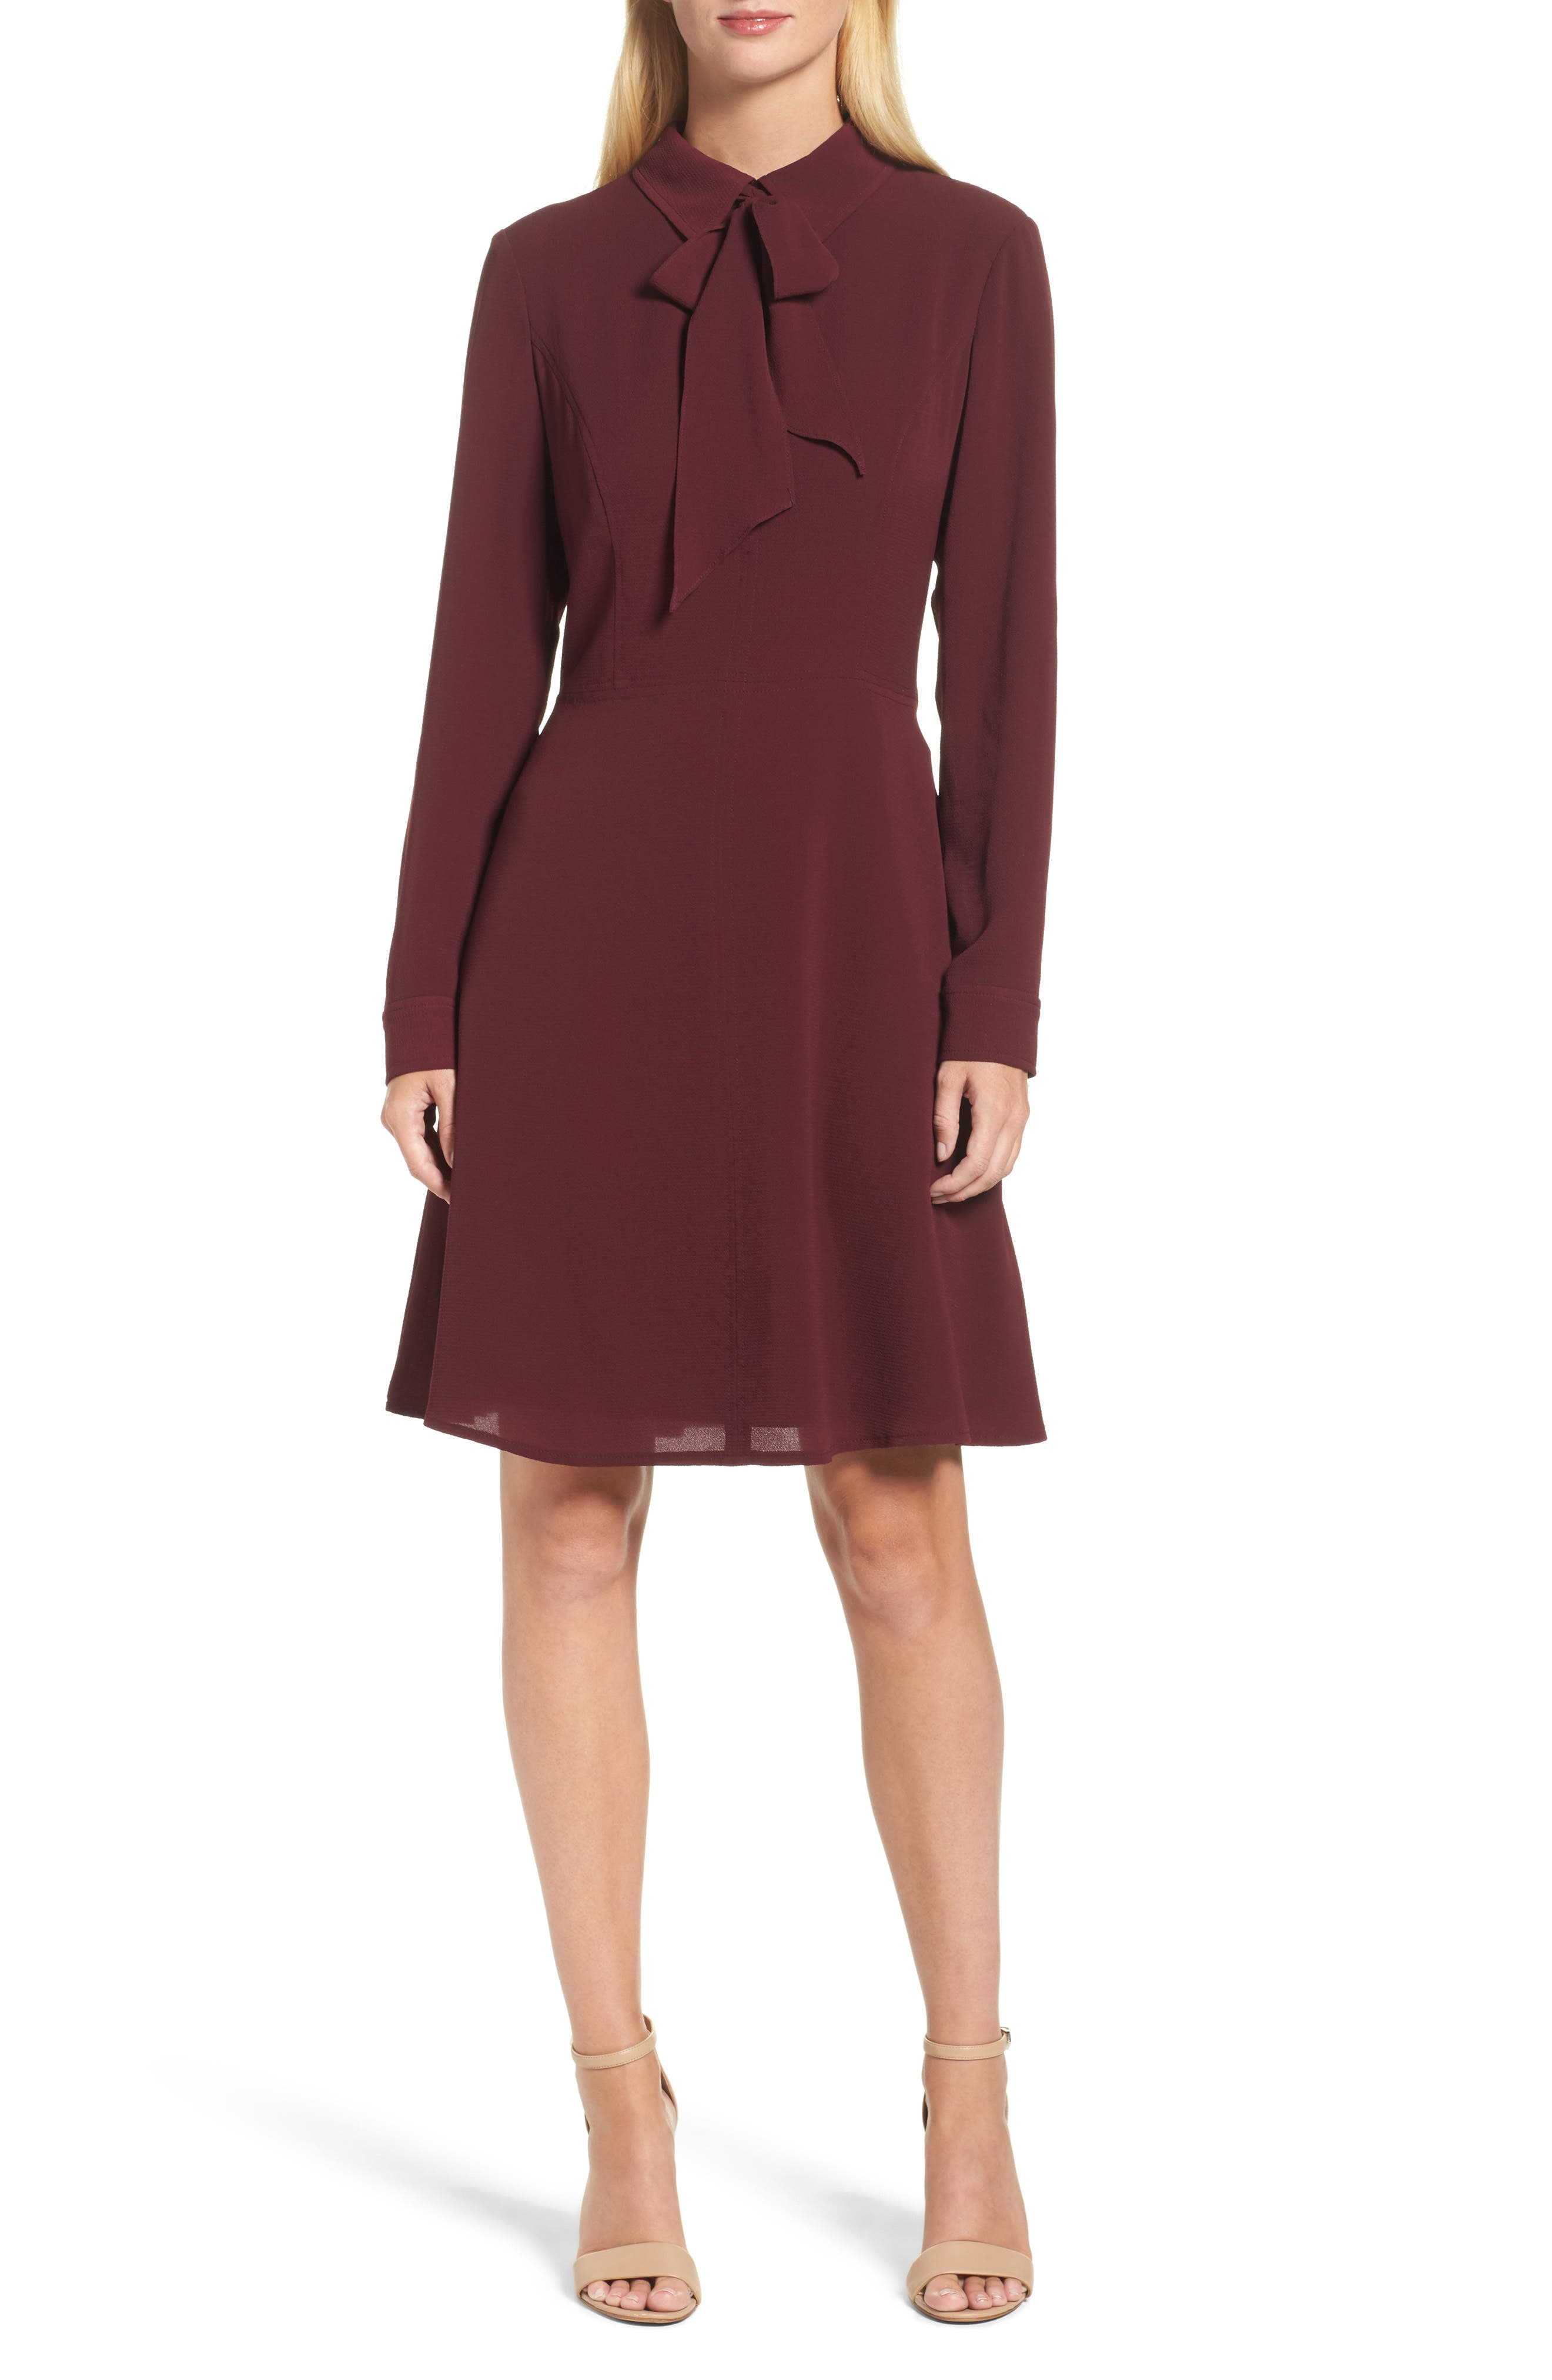 Alternate Image 1 Selected - Maggy London Crepe Bow Fit & Flare Dress (Regular & Petite)